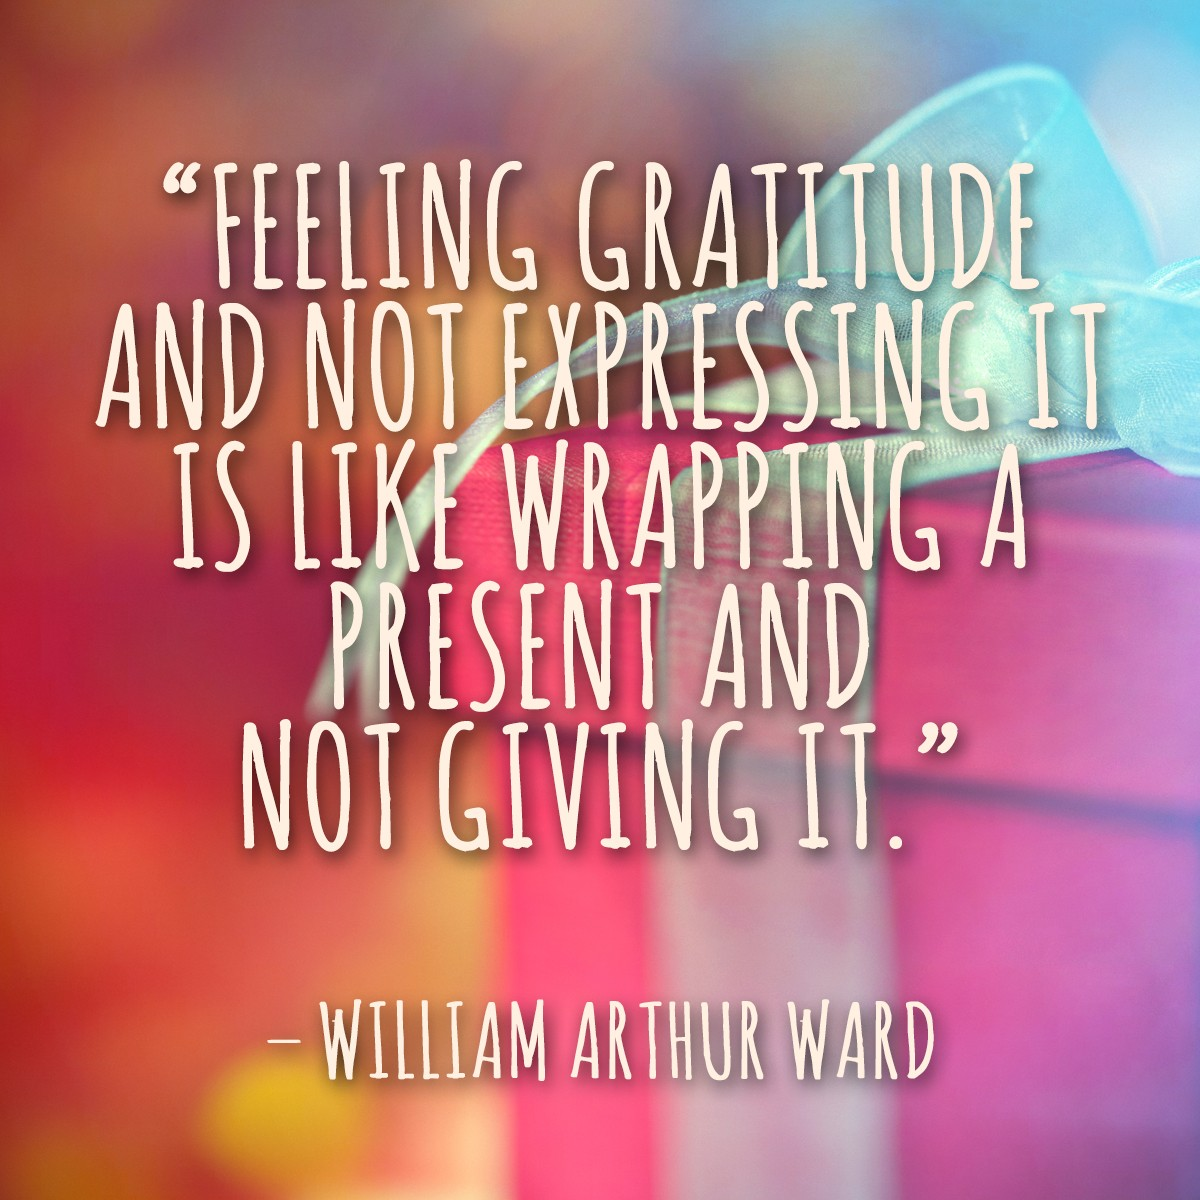 Feeling gratitude and not expressing it is like wrapping a present and not giving it. - William Arthur Ward | Thanksgiving.com